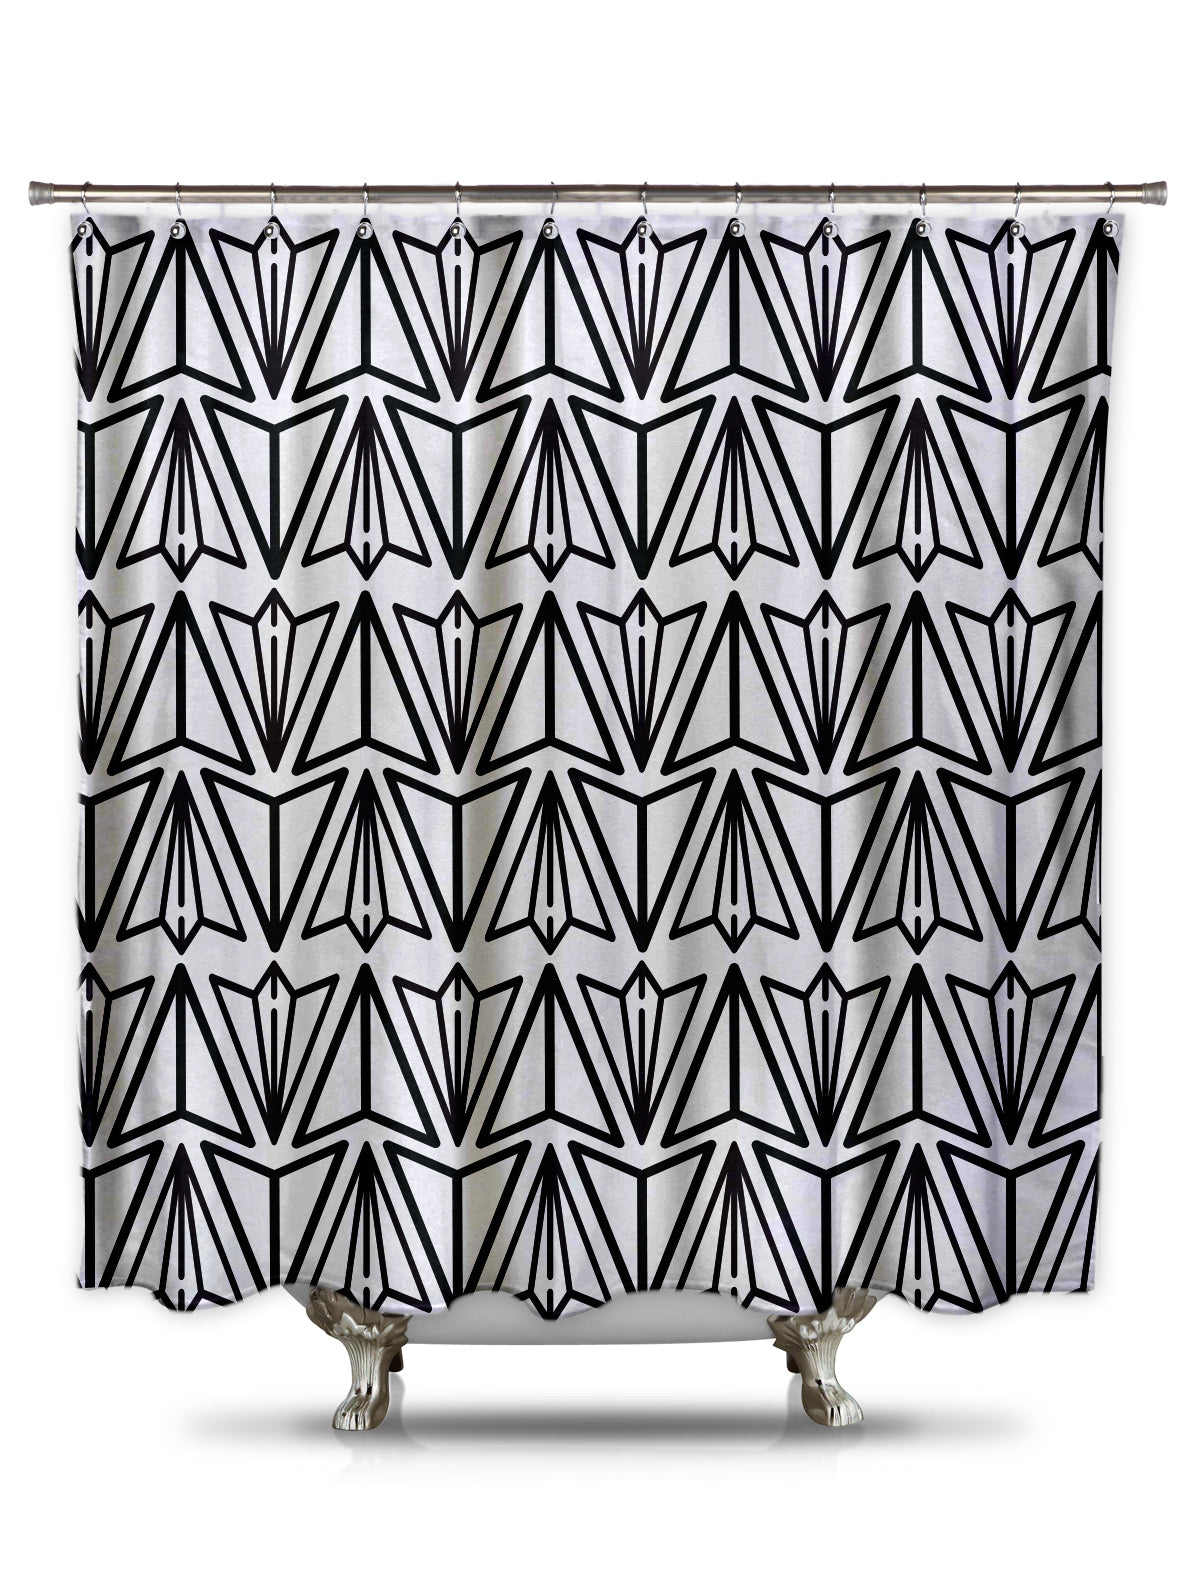 Paper Airplane Black and White Shower Curtain by Fred DePaoli